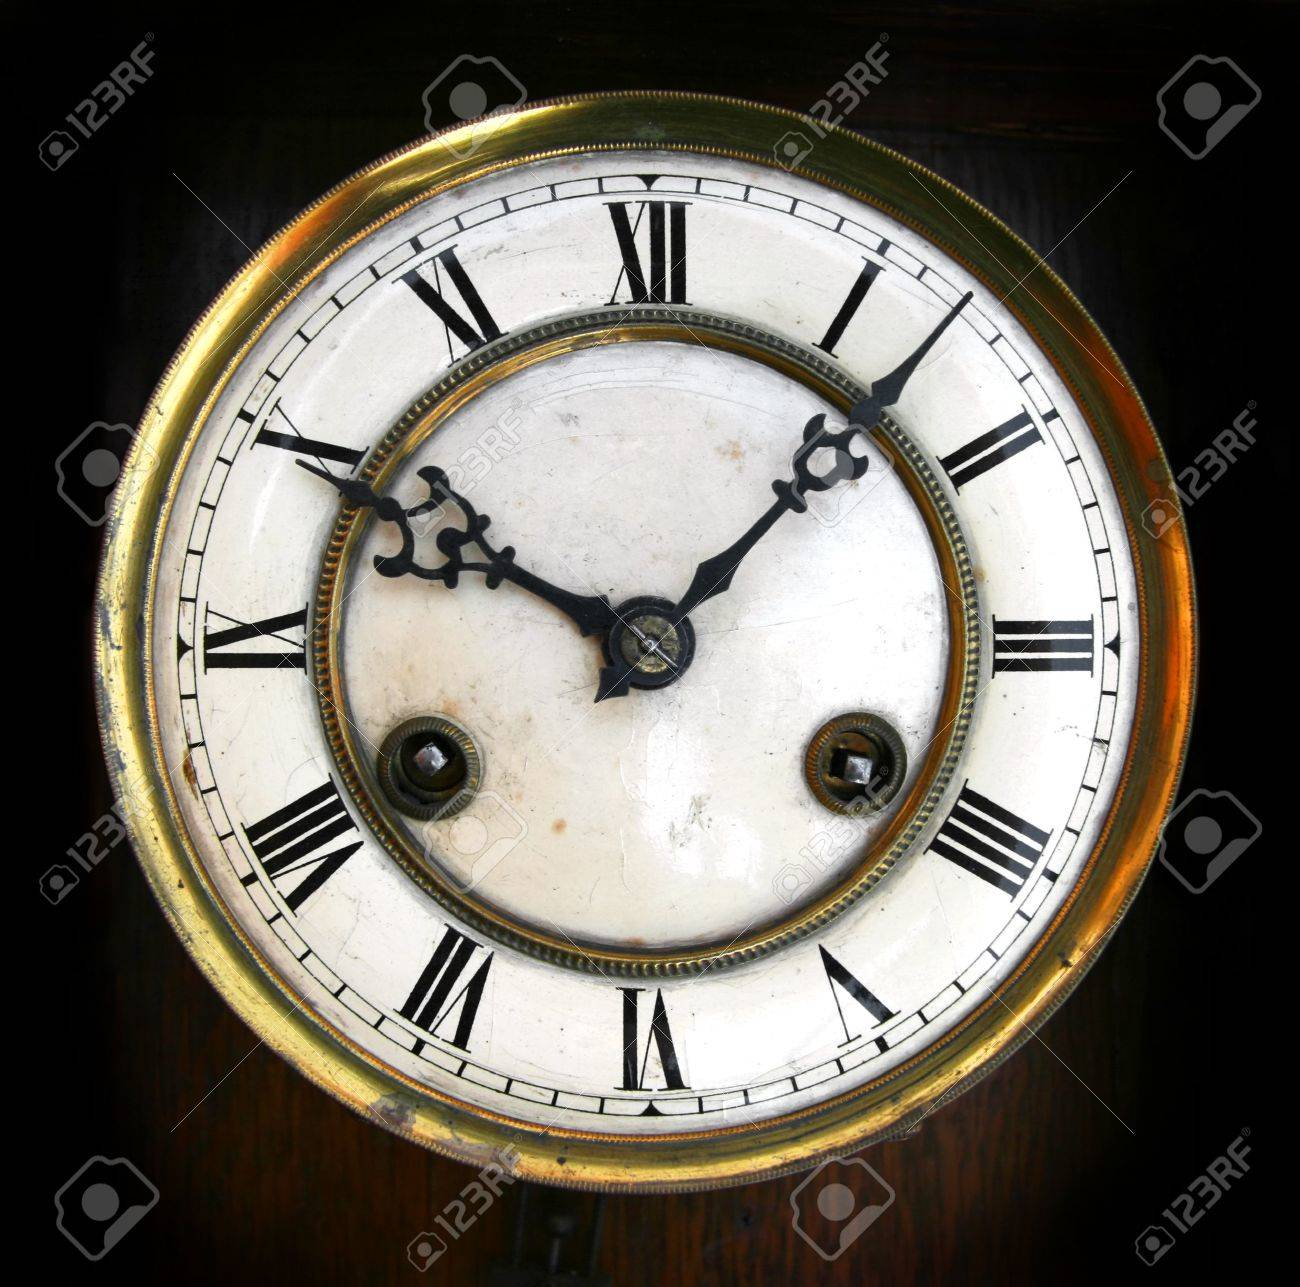 antique clock face with roman numerals stock photo picture and